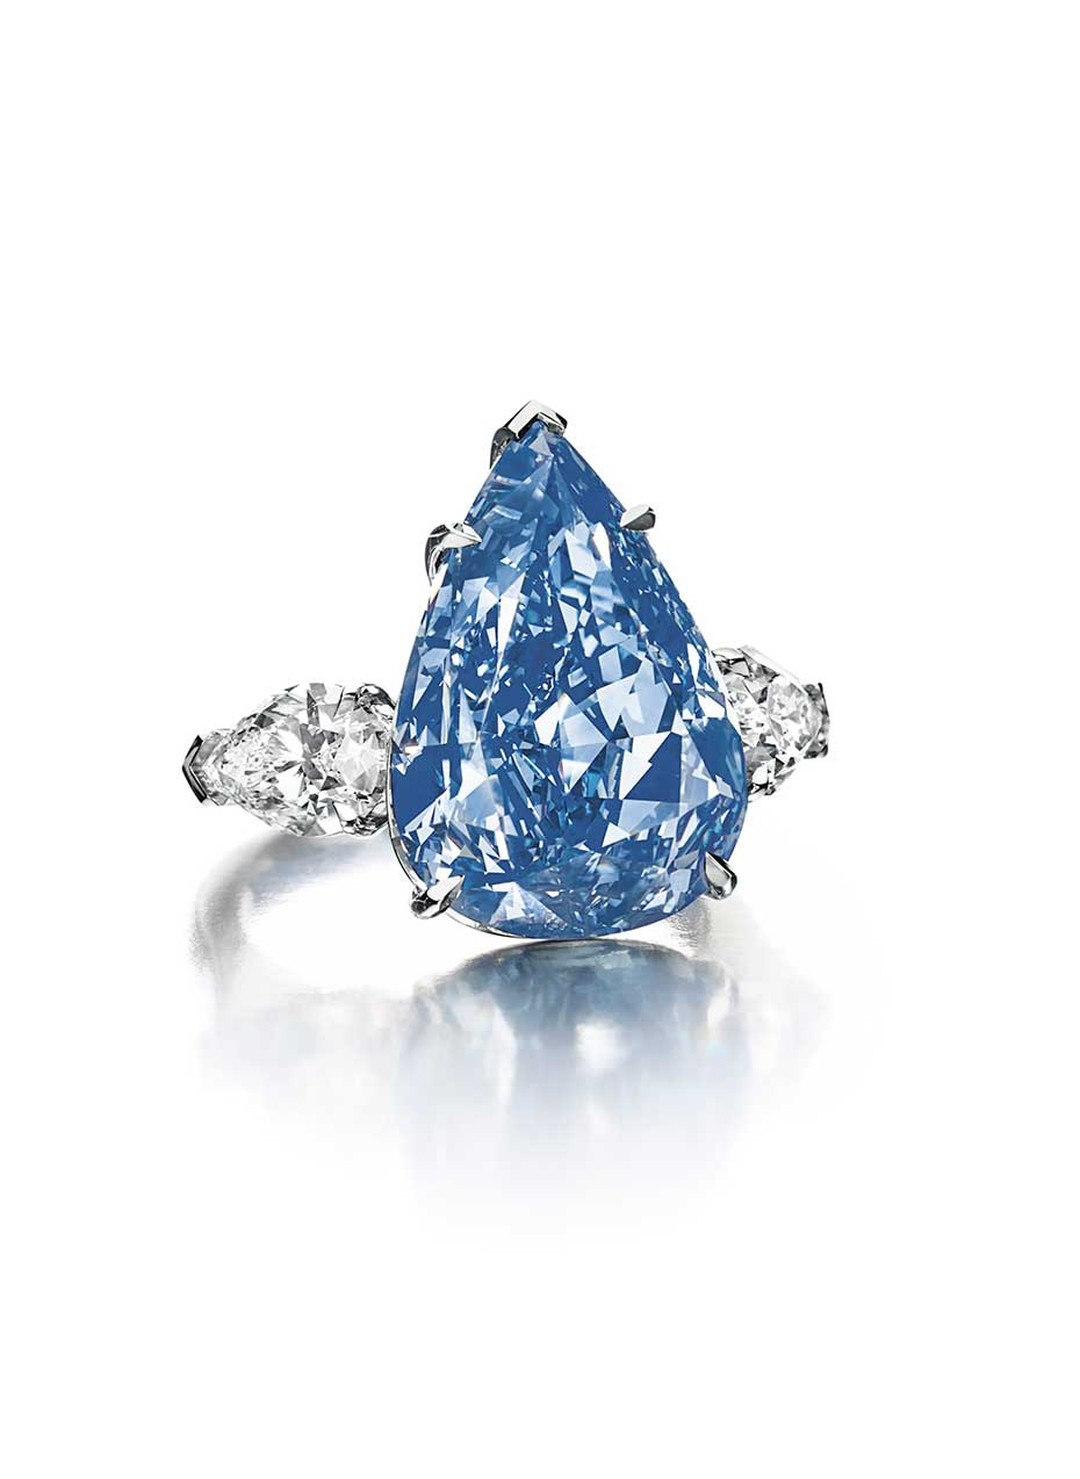 To be sold at the Magnificent Jewels auction to be held in Geneva on 14 May 2014, the Christie's Lot 260 'The Blue' diamond (13.22ct) features two pear-shaped diamond on either side. Images By: Christie's Images Ltd. 2014